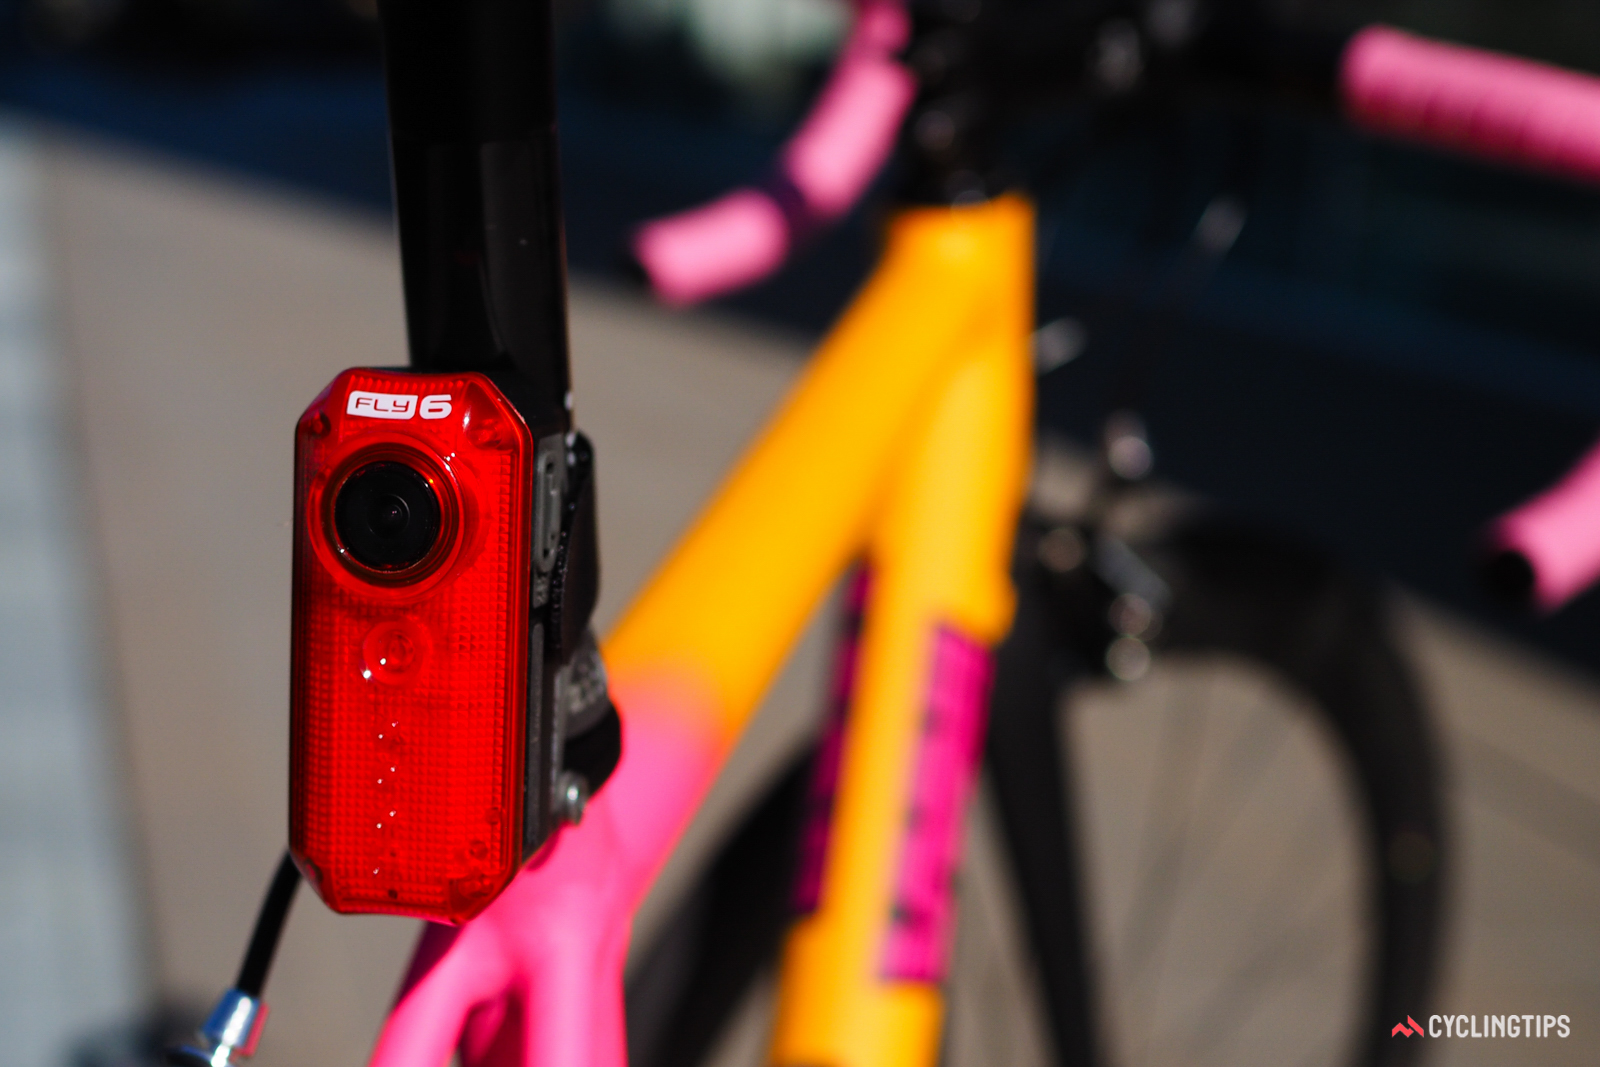 Even with the success of the original Fly6 rear-facing camera and LED flasher, Cycliq says it couldn't have launched the follow-up Fly12 front-facing unit without the help of Kickstarter. Photo: James Huang.